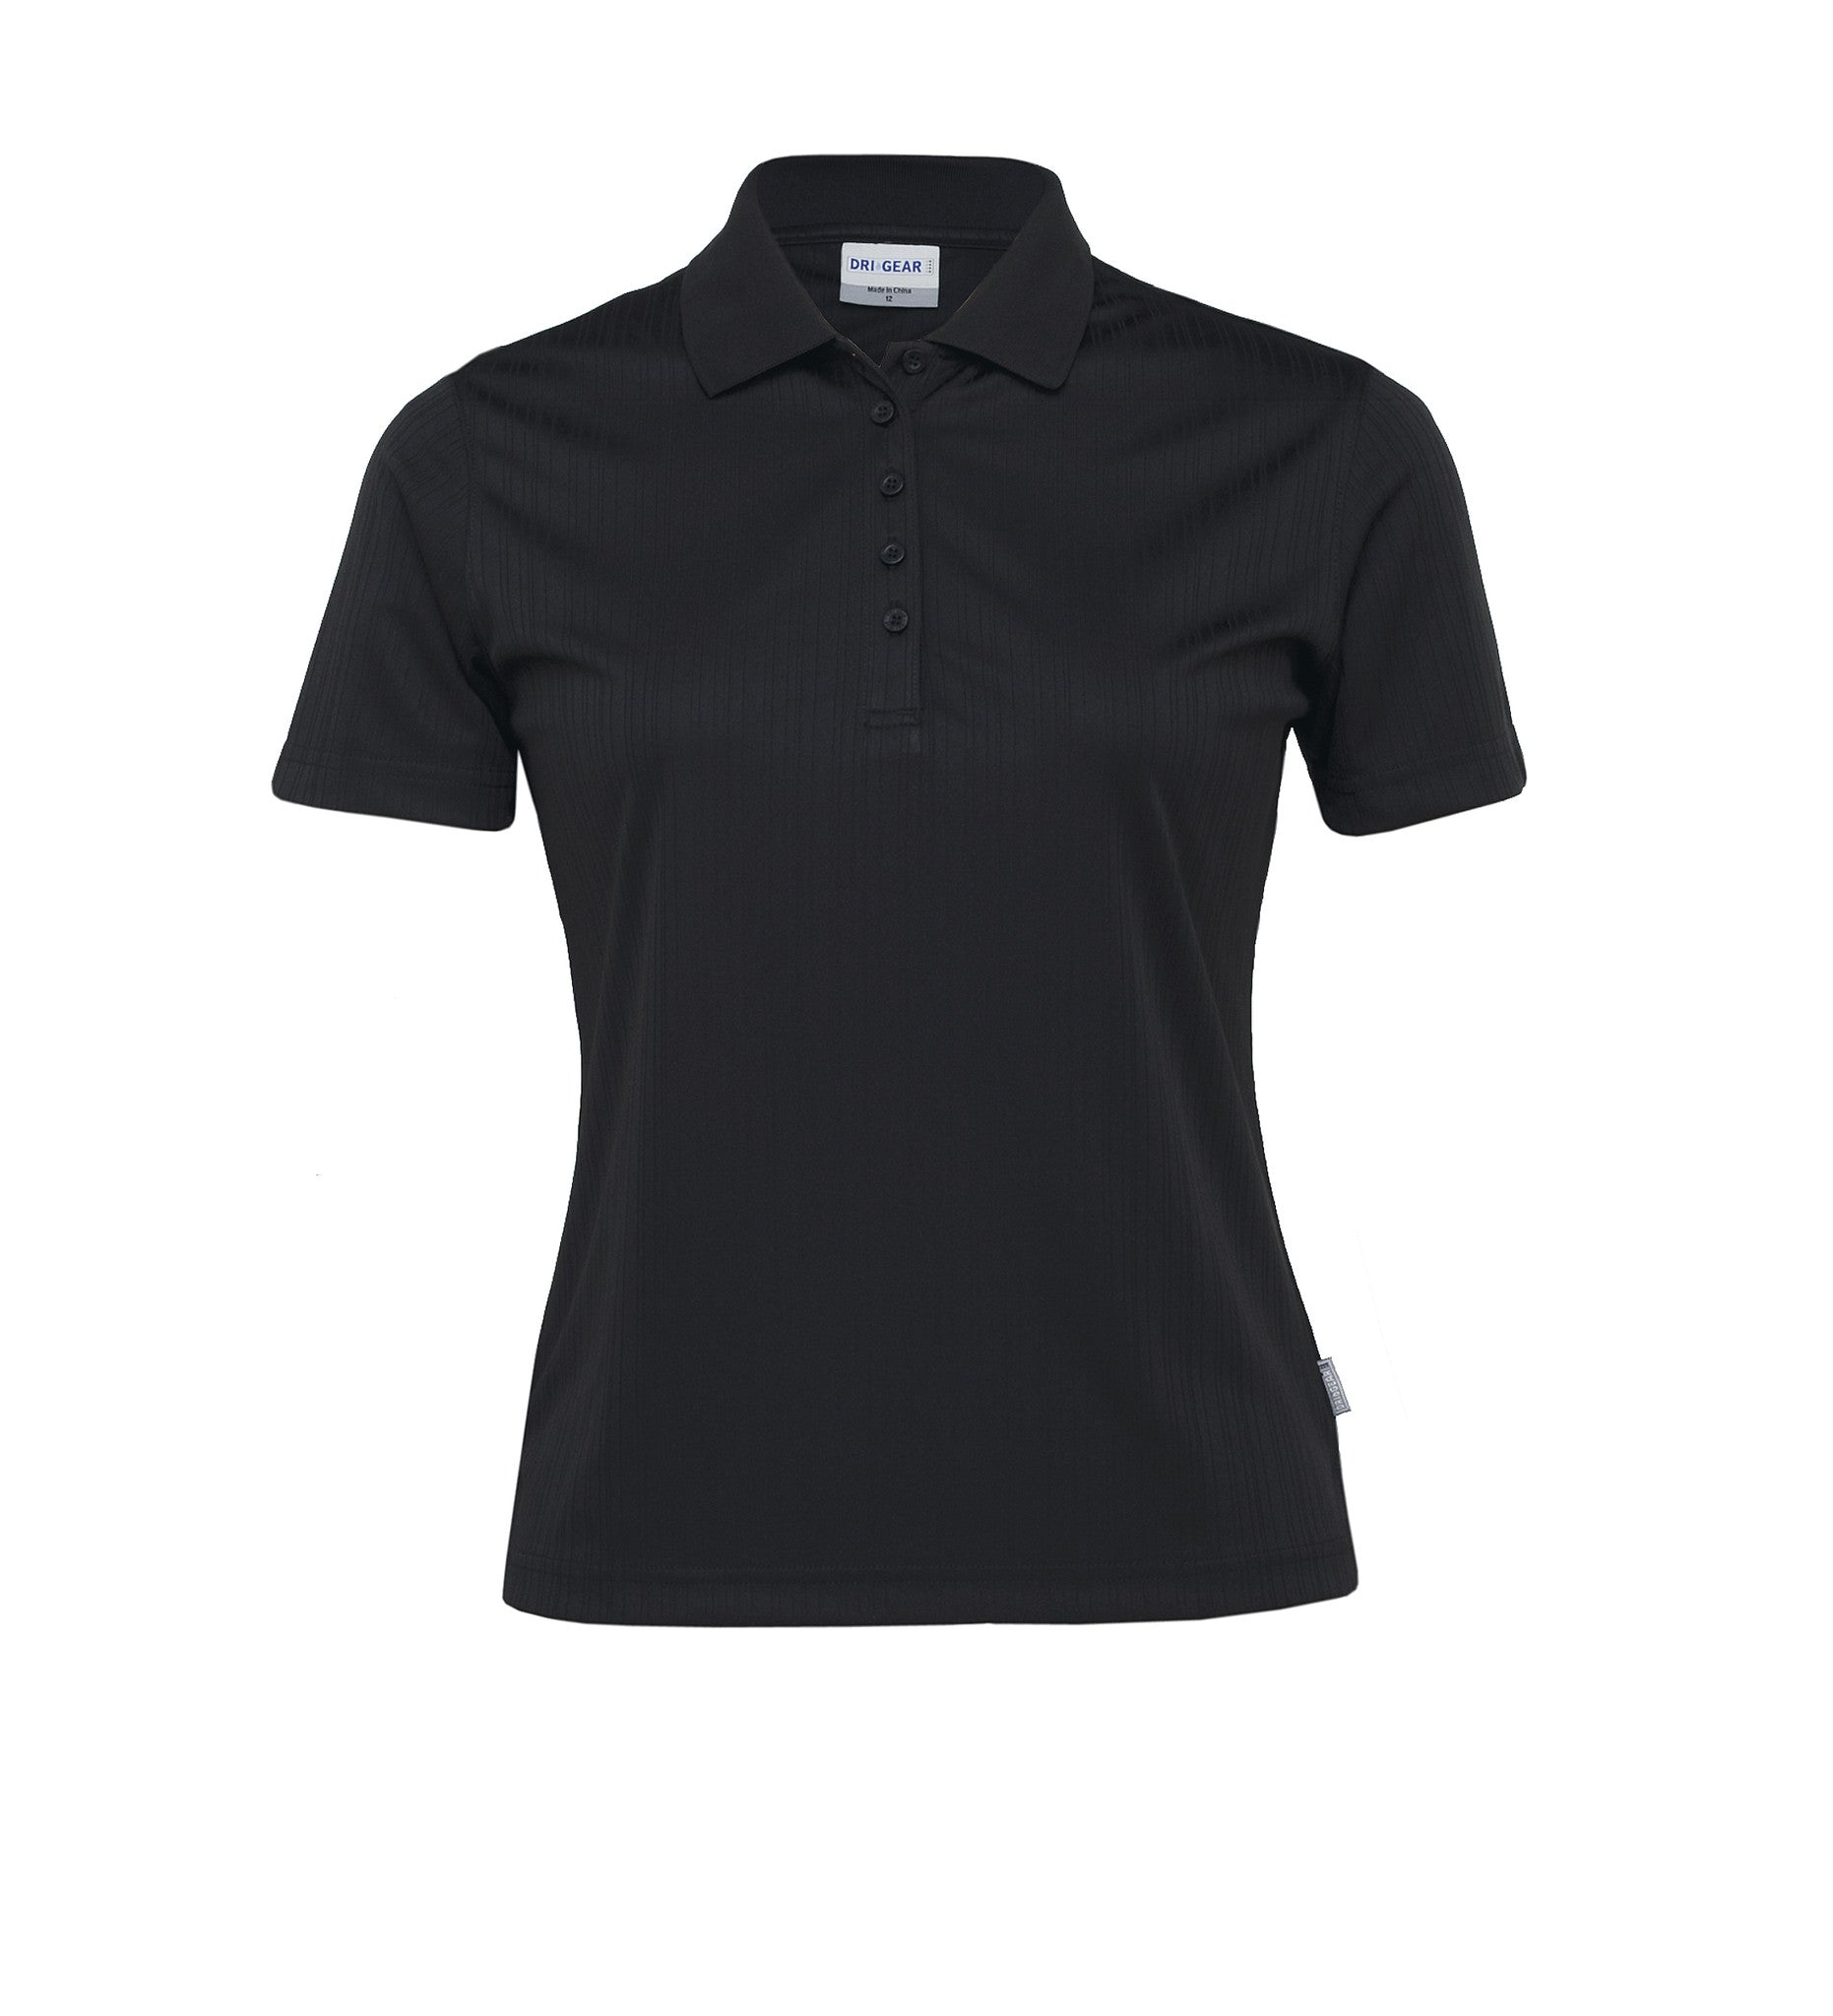 Gear For Life-Gear For Life Dri Gear Womens Corporate Pinnacle Polo--Corporate Apparel Online - 1